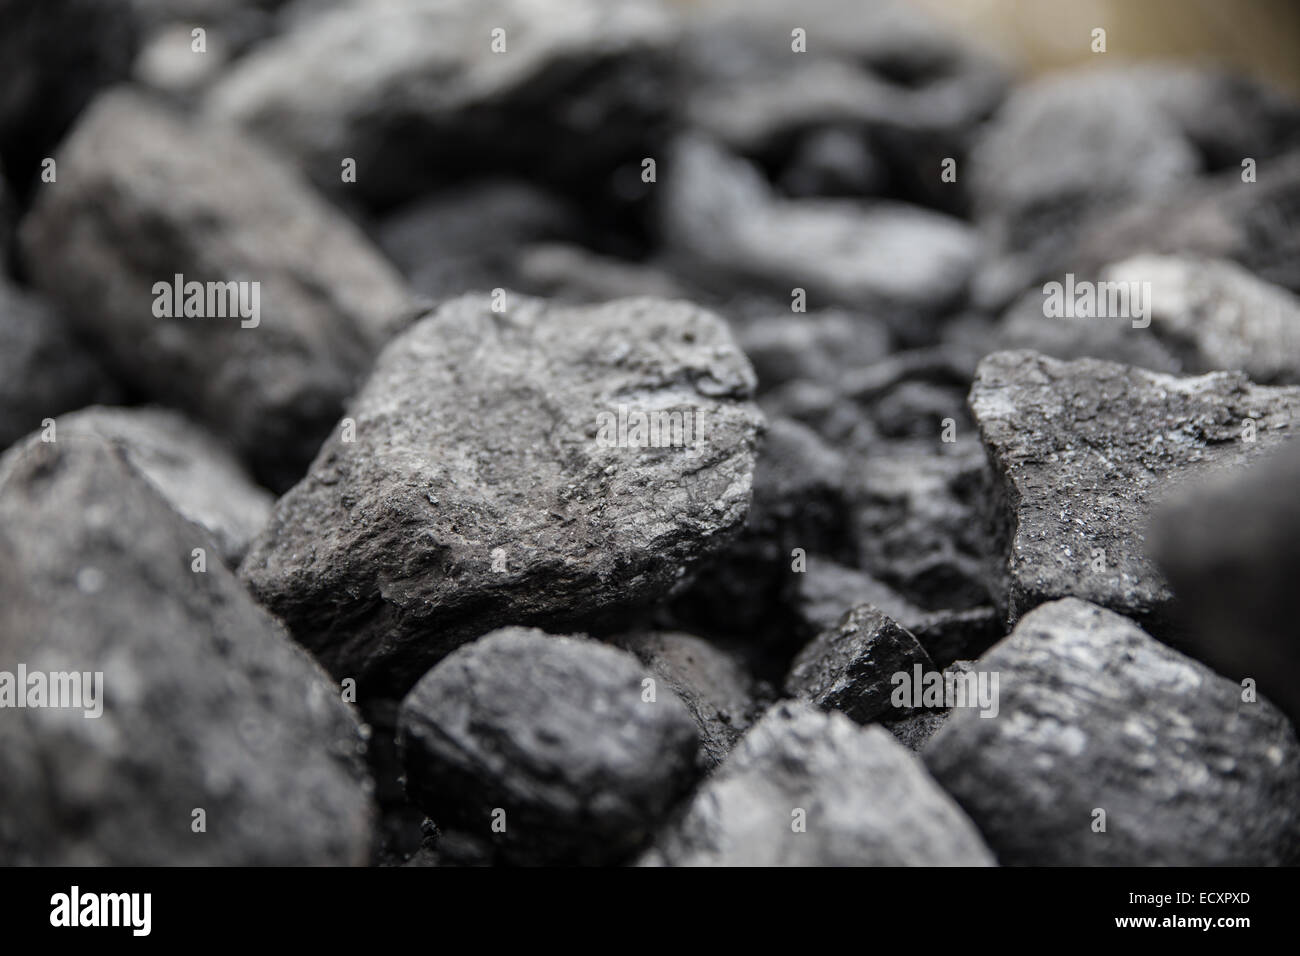 Shallow depth of field photo of lumps of coal piled up. - Stock Image